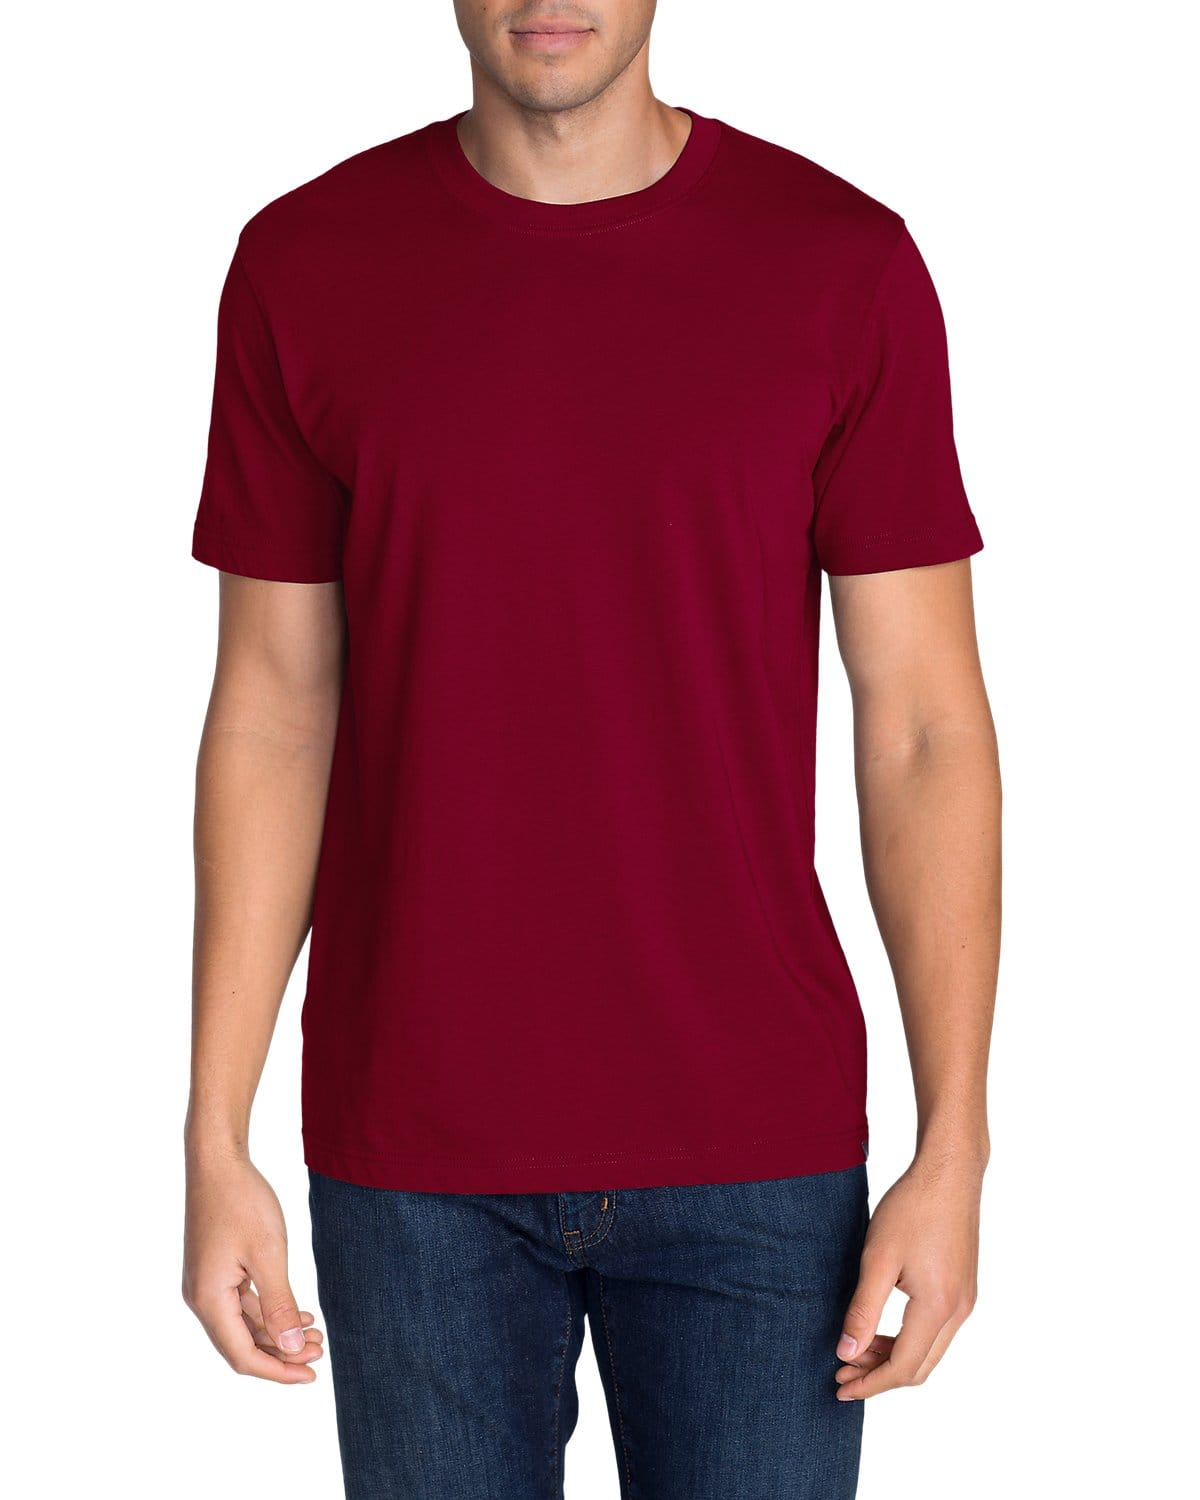 Eddie Bauer - 40% off most purchases, free shipping, including clearance! Get Legend Wash tshirt for $8.99!